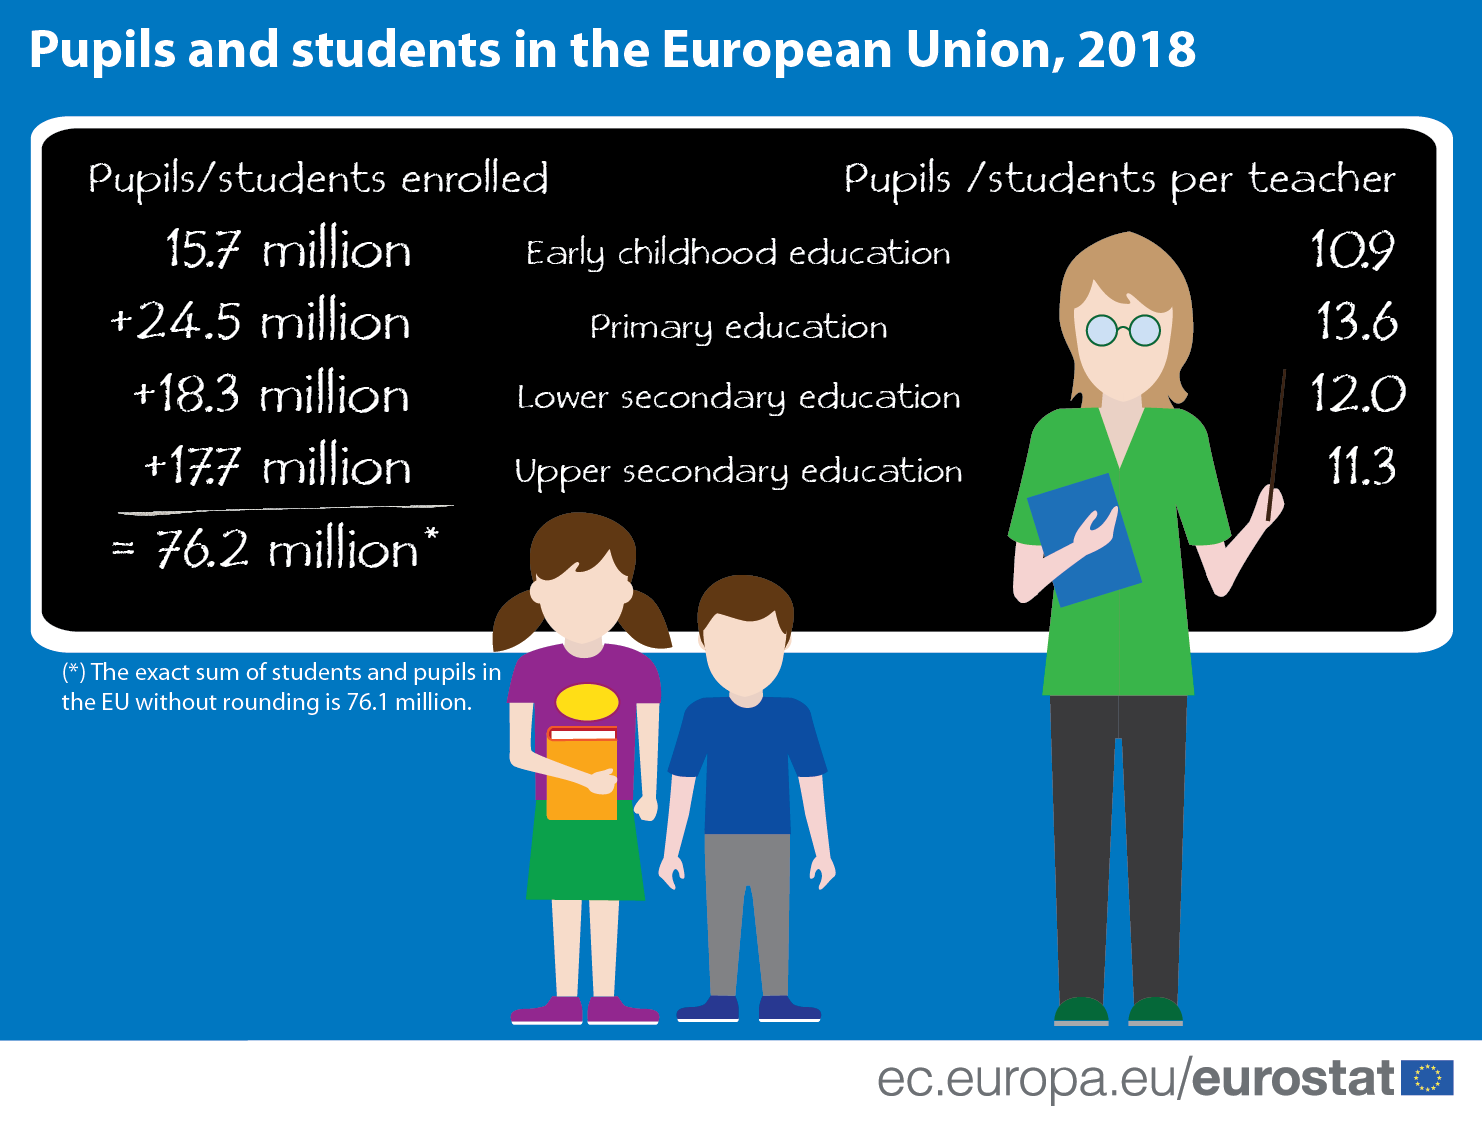 Pupils and students in the European Union, 2018